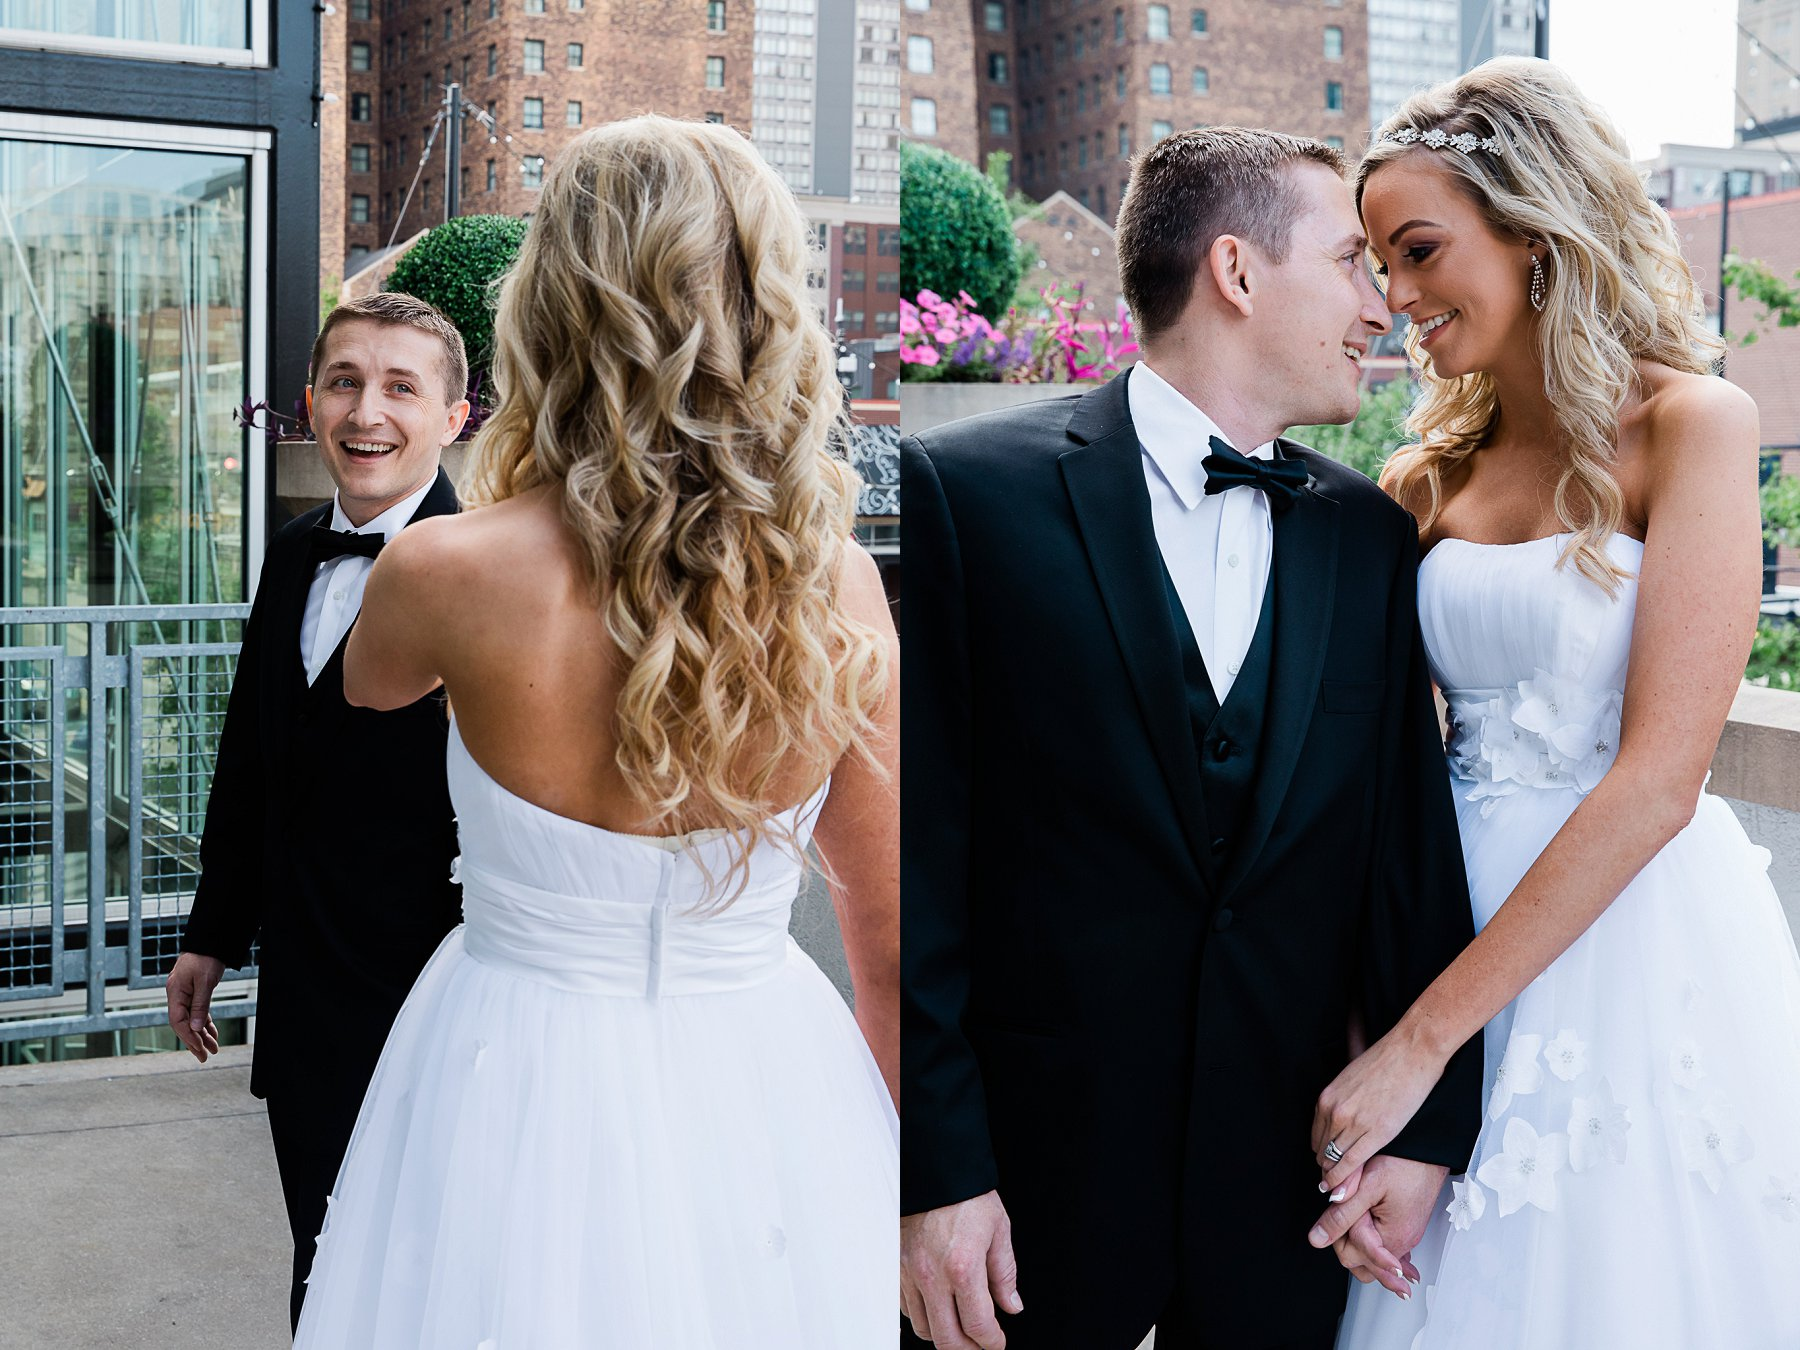 First Look Photography by Merry Ohler | Best Missouri Wedding Photographer